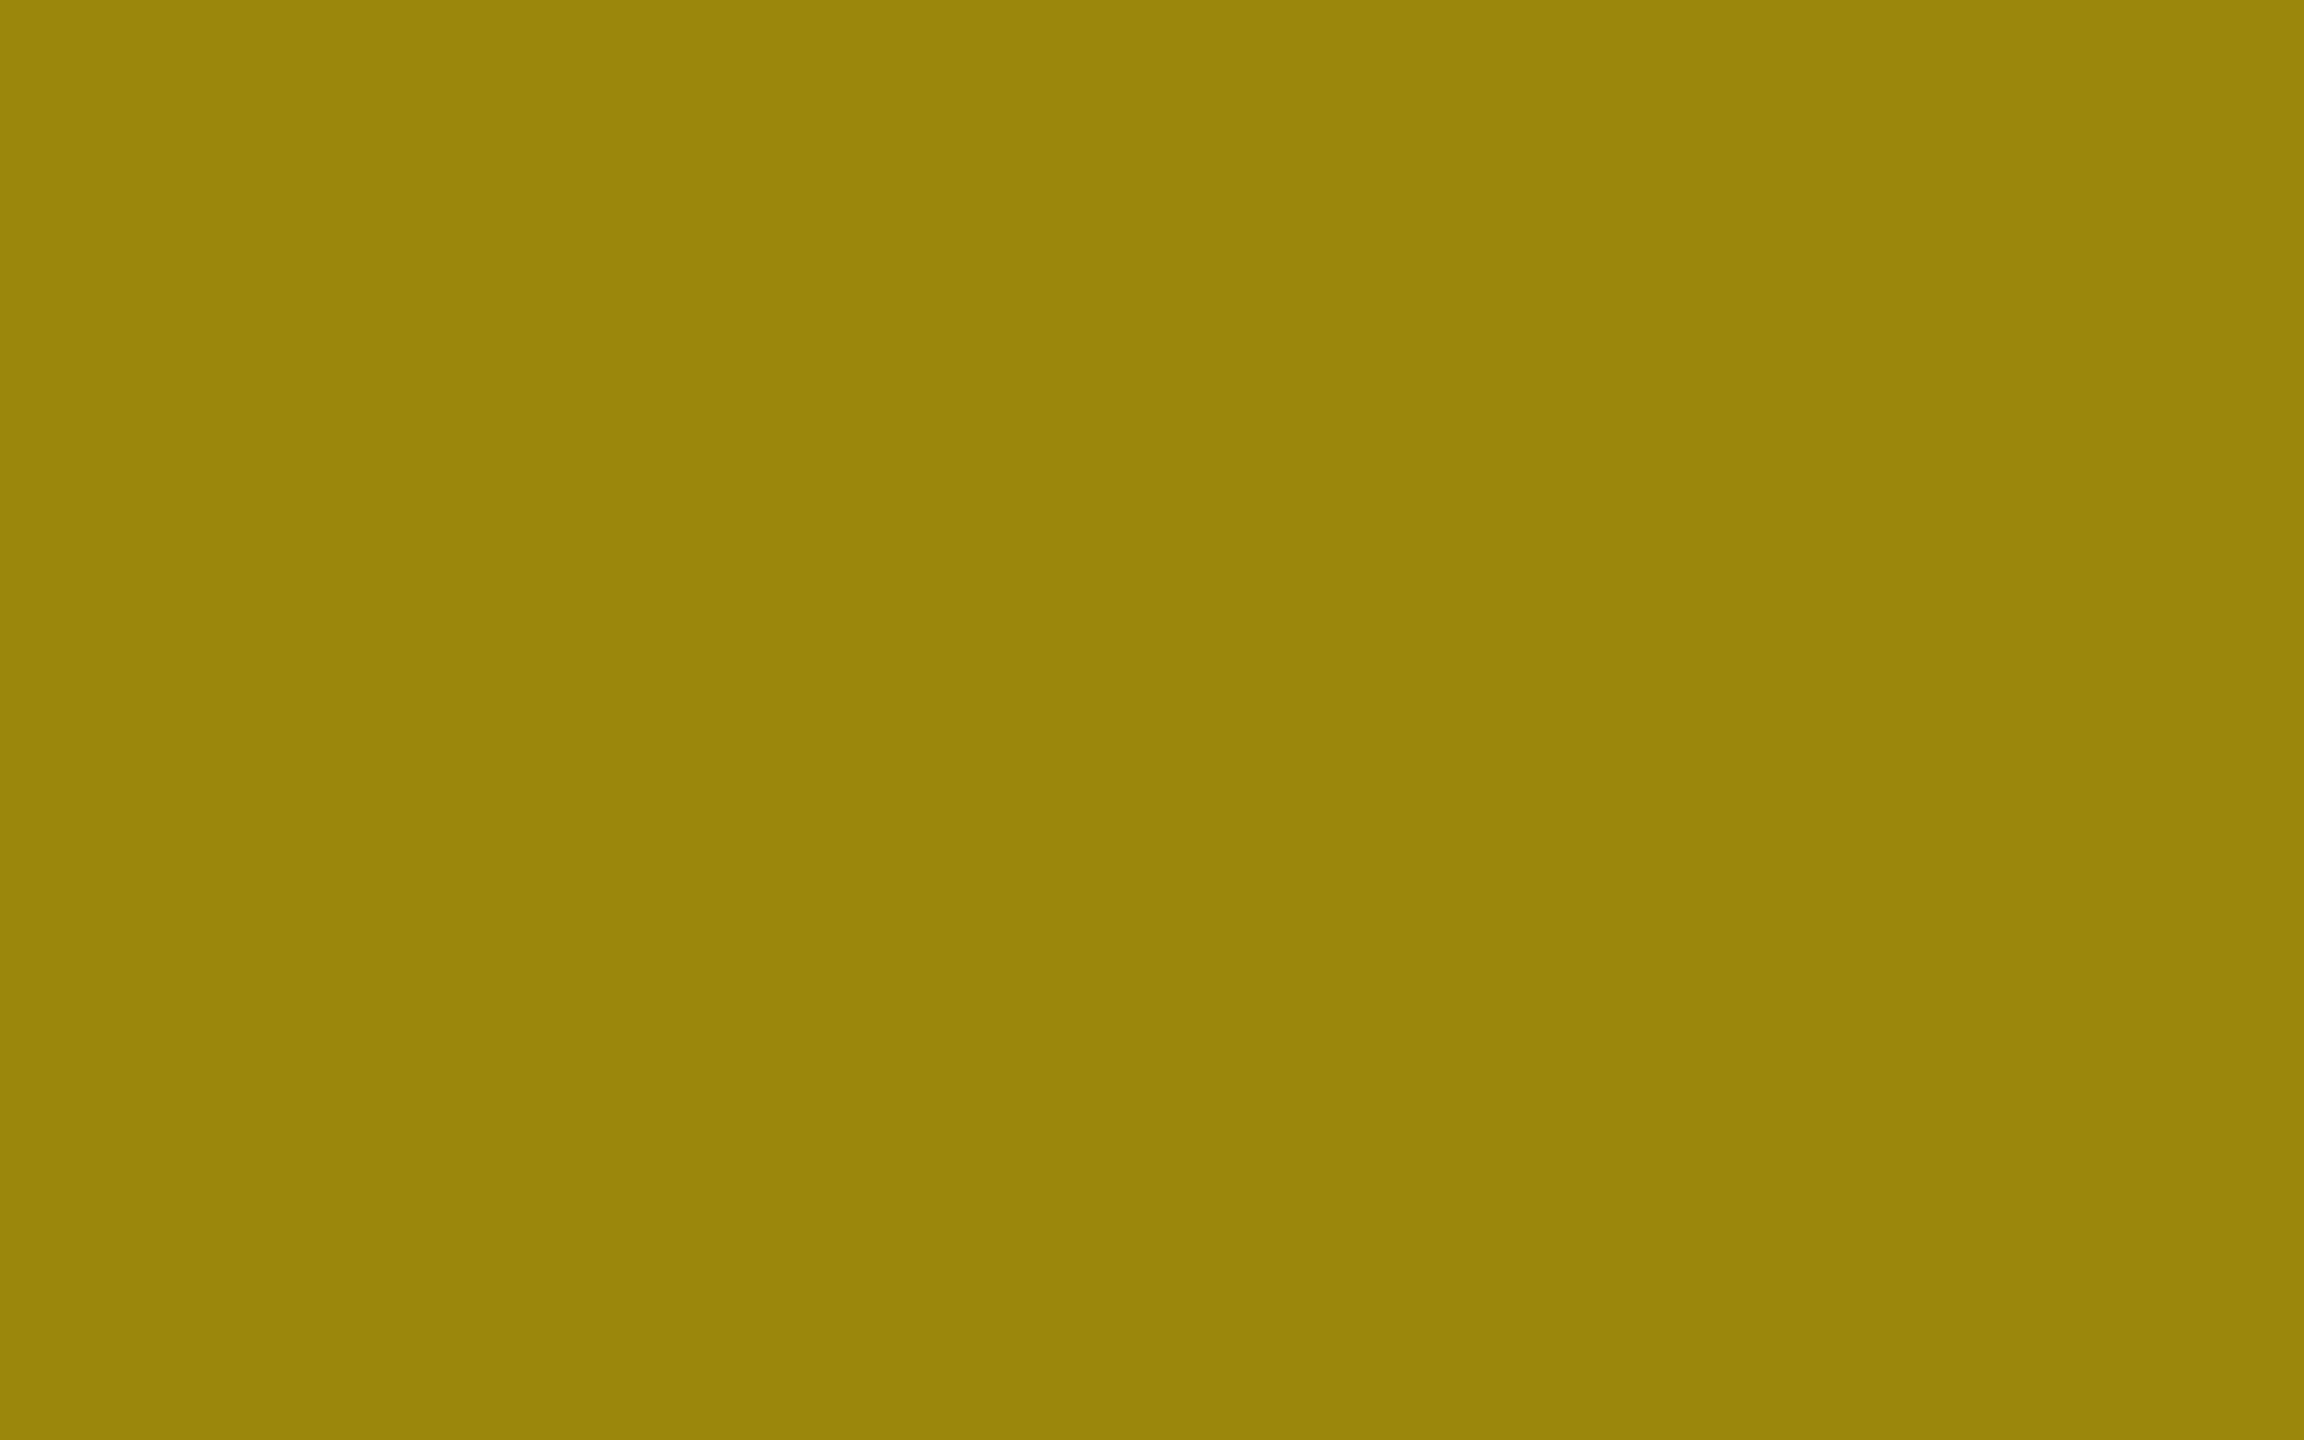 2304x1440 Dark Yellow Solid Color Background